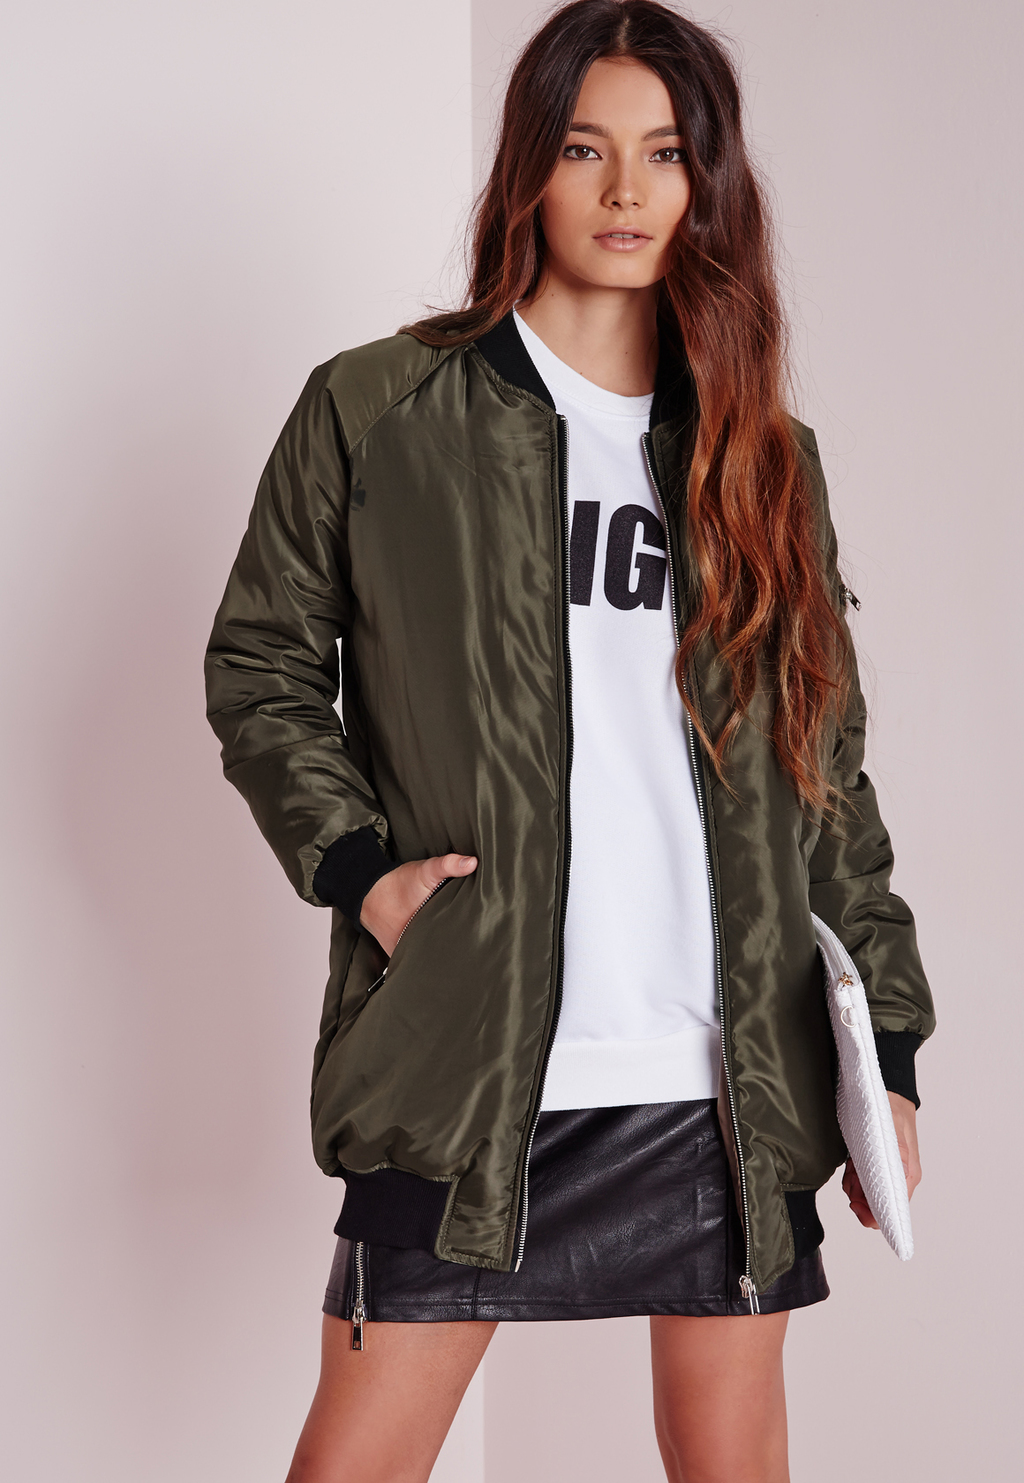 Longline Padded Bomber Jacket Khaki, Beige - pattern: plain; length: below the bottom; collar: round collar/collarless; predominant colour: khaki; occasions: casual; fit: straight cut (boxy); fibres: polyester/polyamide - 100%; hip detail: subtle/flattering hip detail; sleeve length: long sleeve; sleeve style: standard; collar break: low/open; pattern type: fabric; texture group: other - bulky/heavy; style: puffa; season: a/w 2015; wardrobe: basic